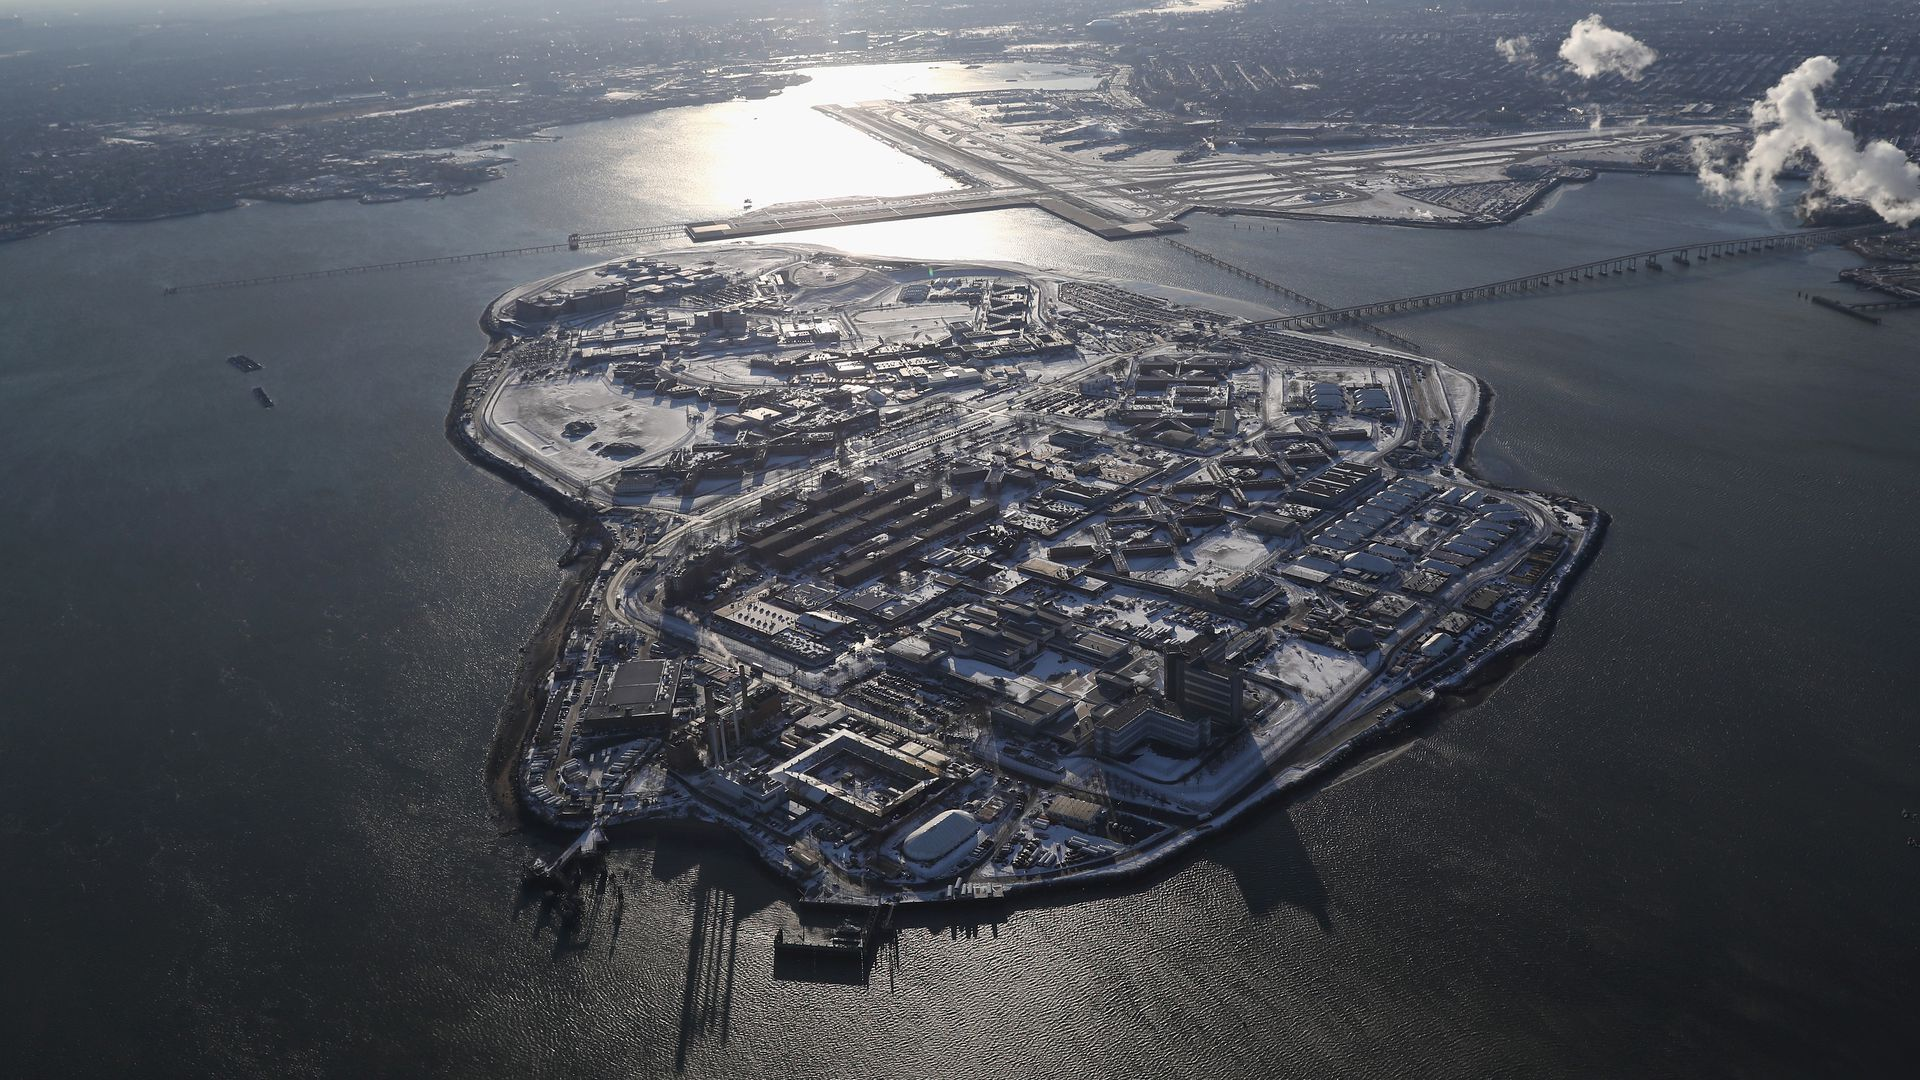 A view of Rikers Island.